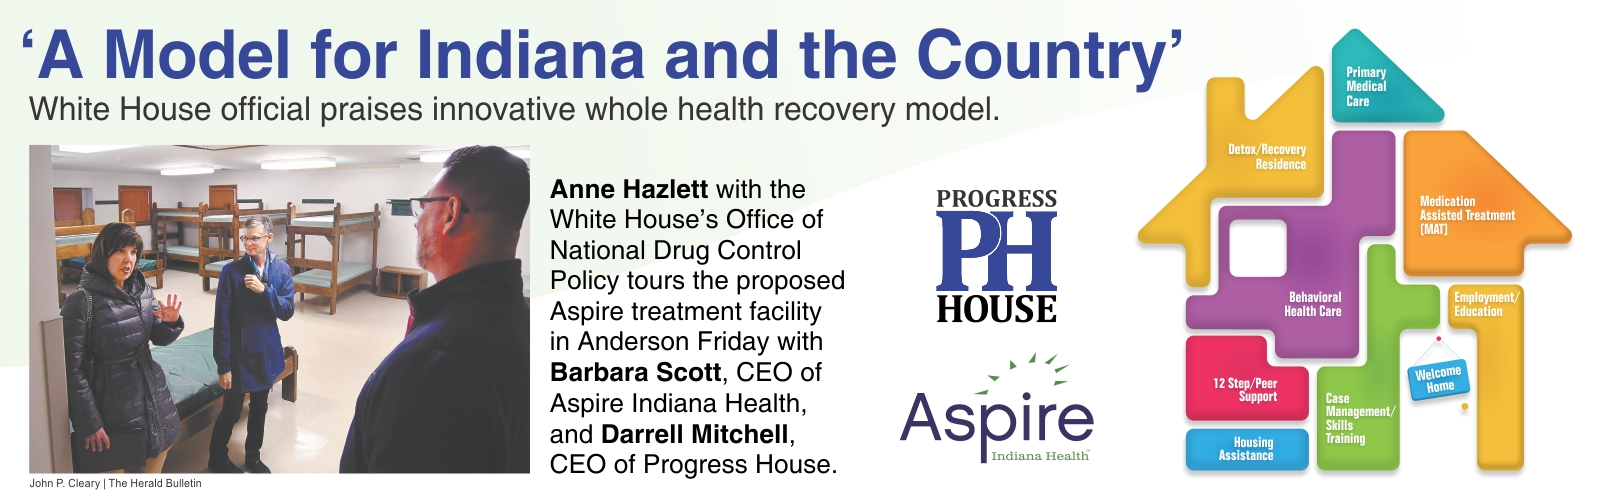 Progress House, an Innovative whole health recovery model